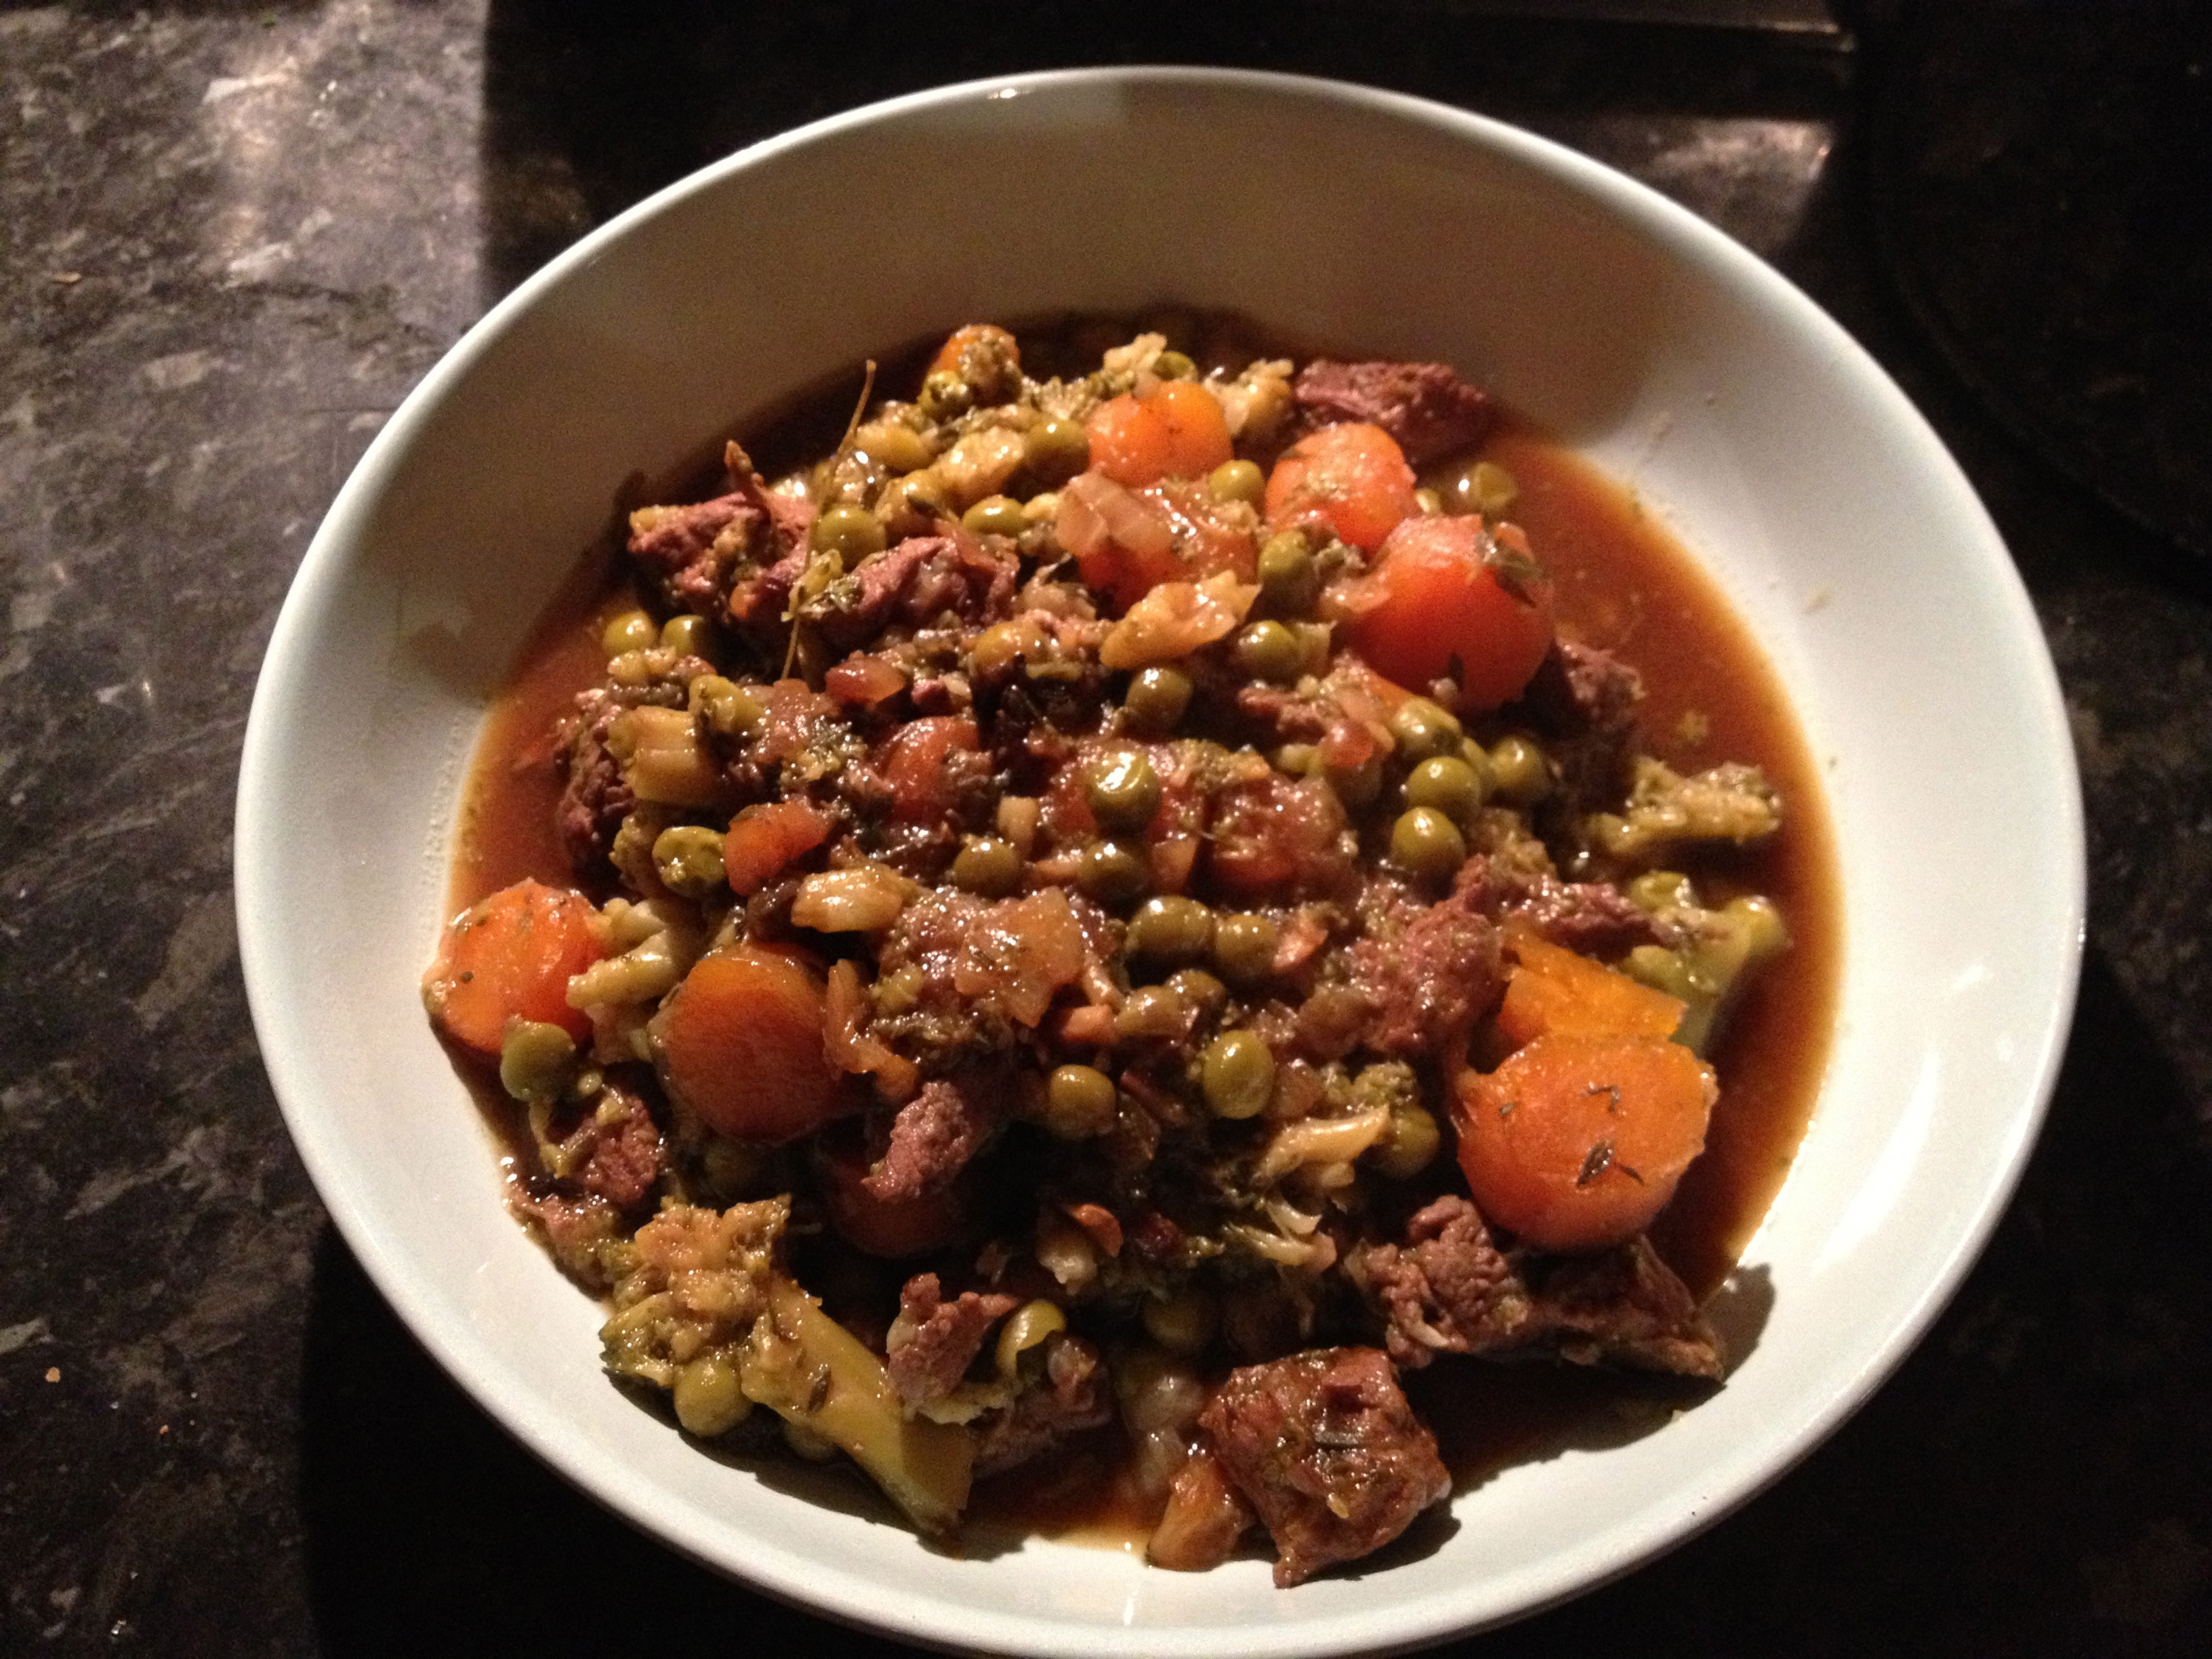 www.hoylesfitness.com, Paleo, Weight Loss, Fat Loss, Low Carb, Low Carb Beef Casserole